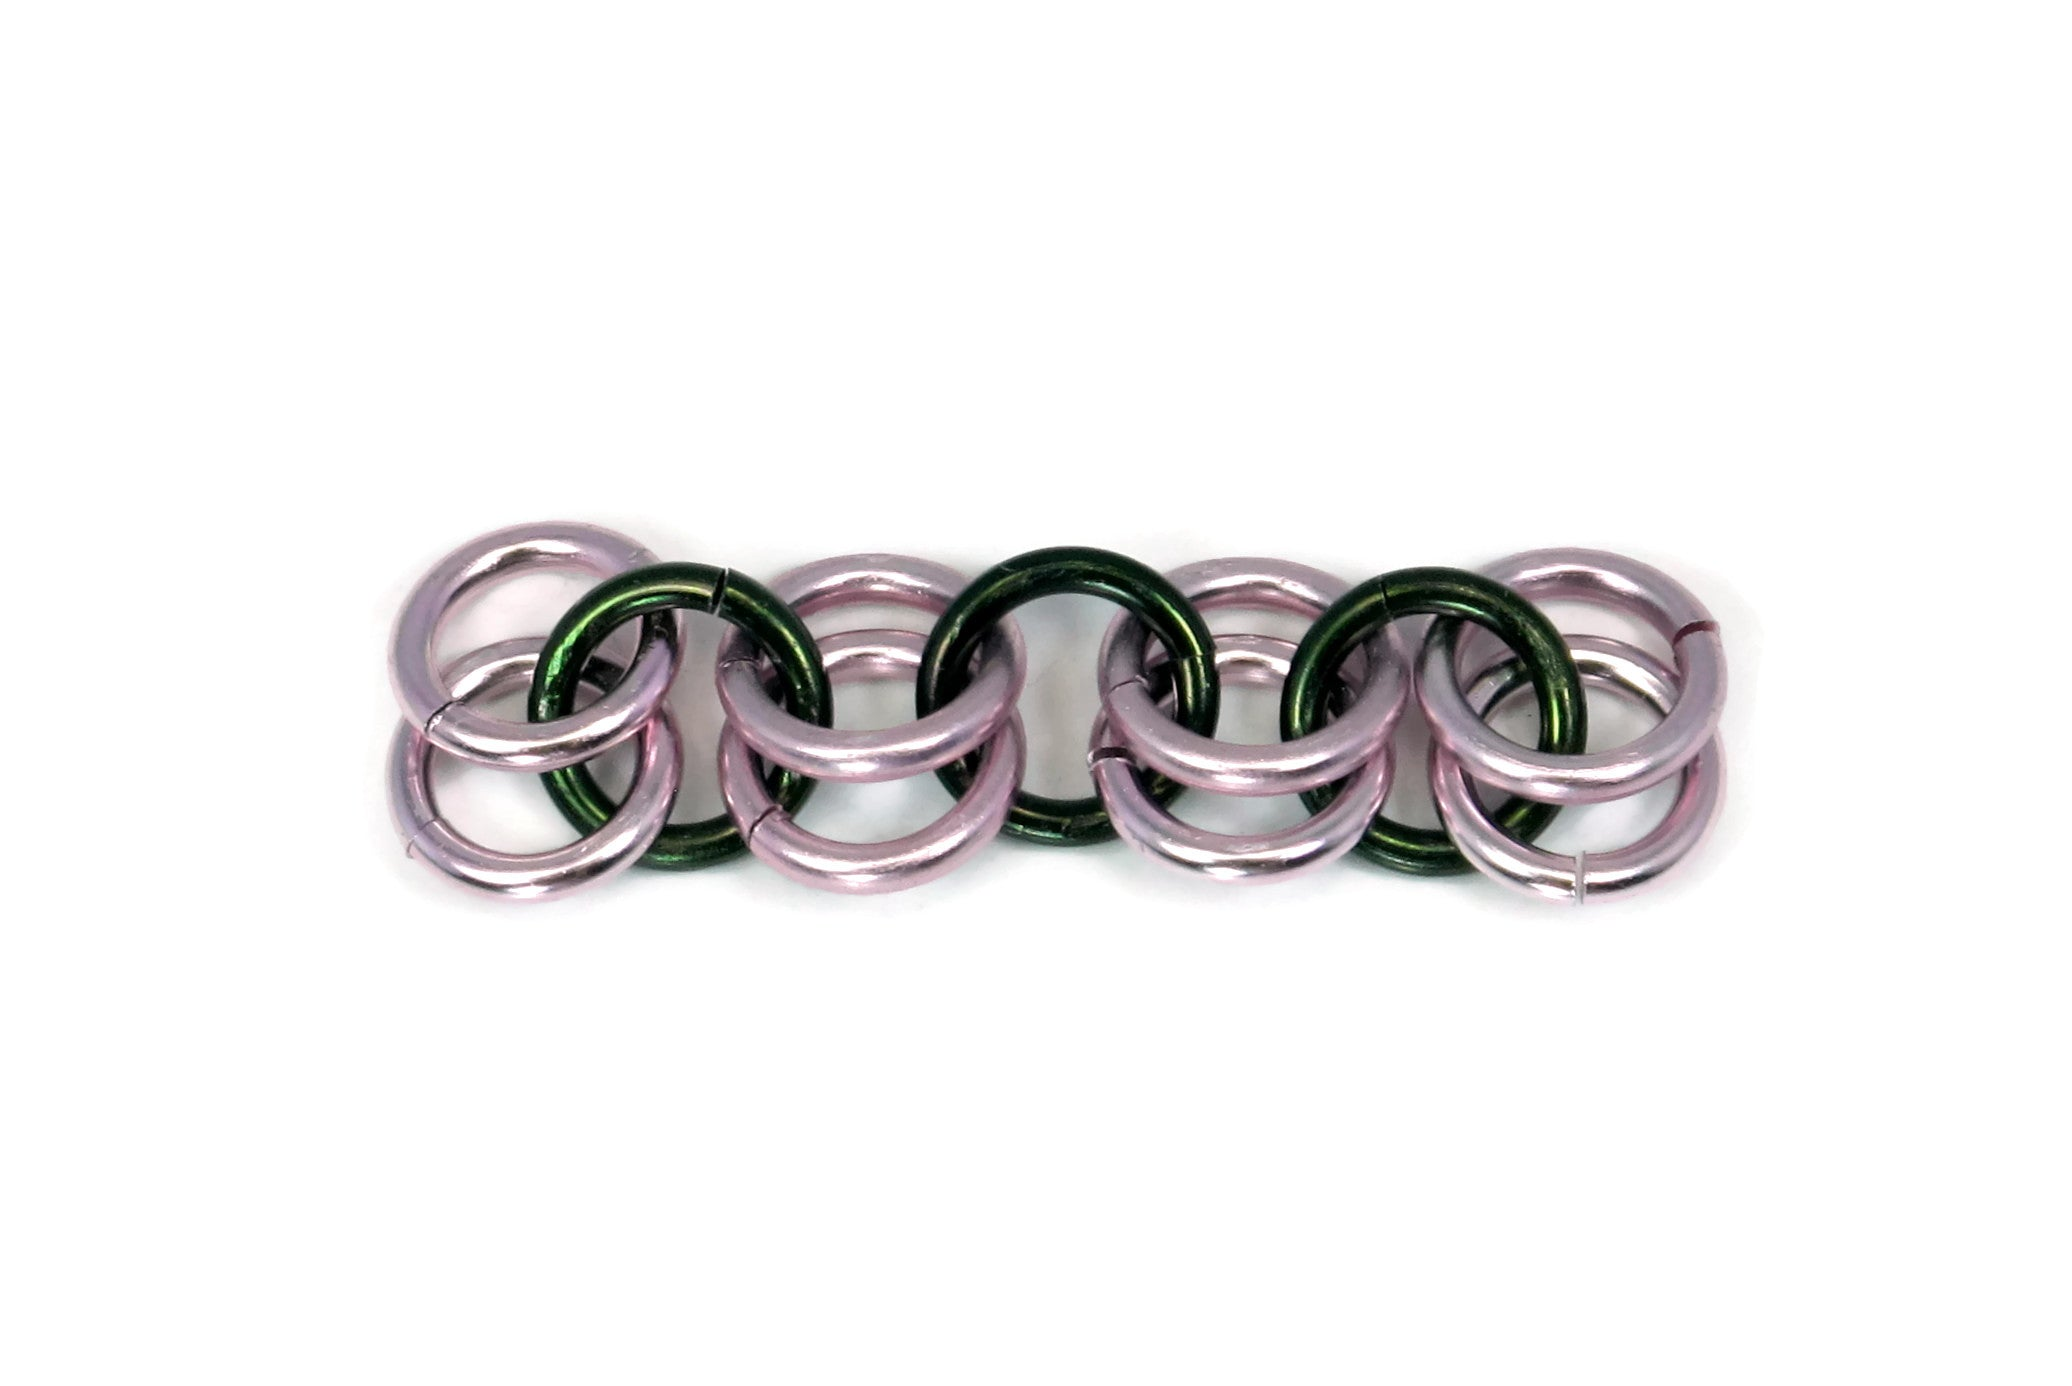 Chainmaille GutsyGuide: Mastering the Basics 1-2-1 Chain